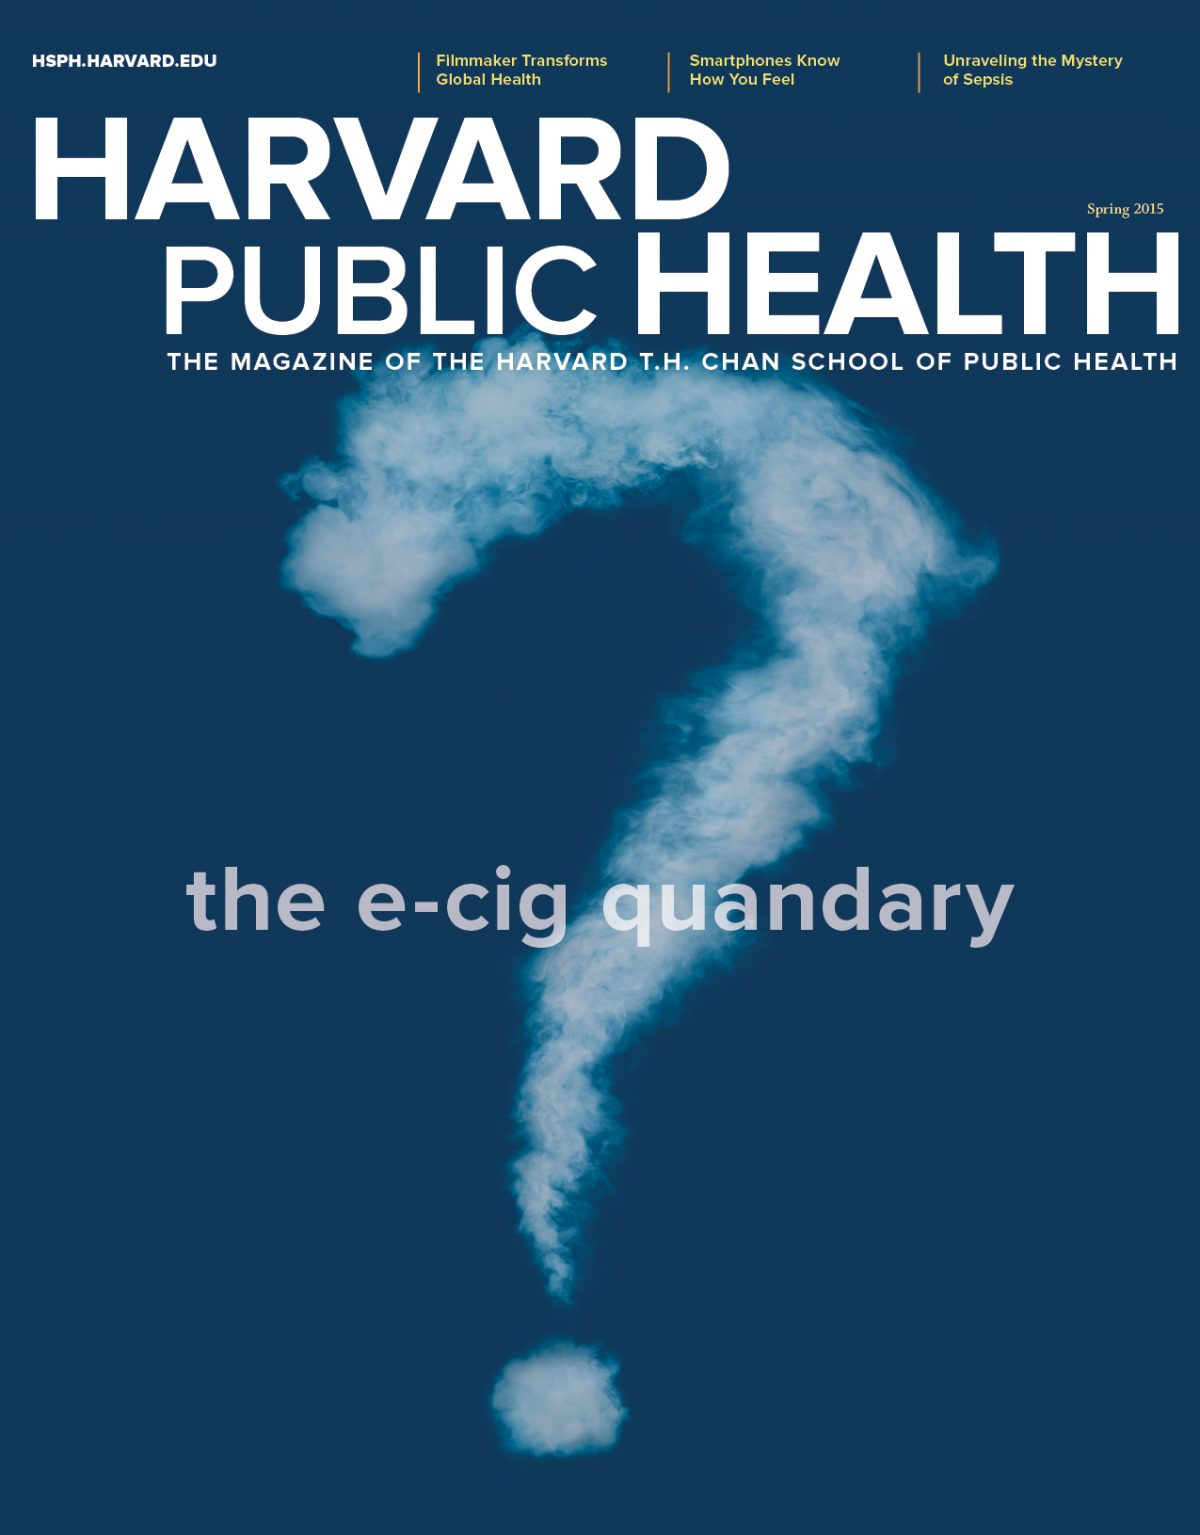 harvard school of public health opencourseware The massachusetts institute of technology (mit) open courseware (ocw)   other courses include health sciences and technology, energy courses,  similar  to other universities, harvard offers a wide variety of free courses  dame equips  faculty to develop online course materials for free public use.